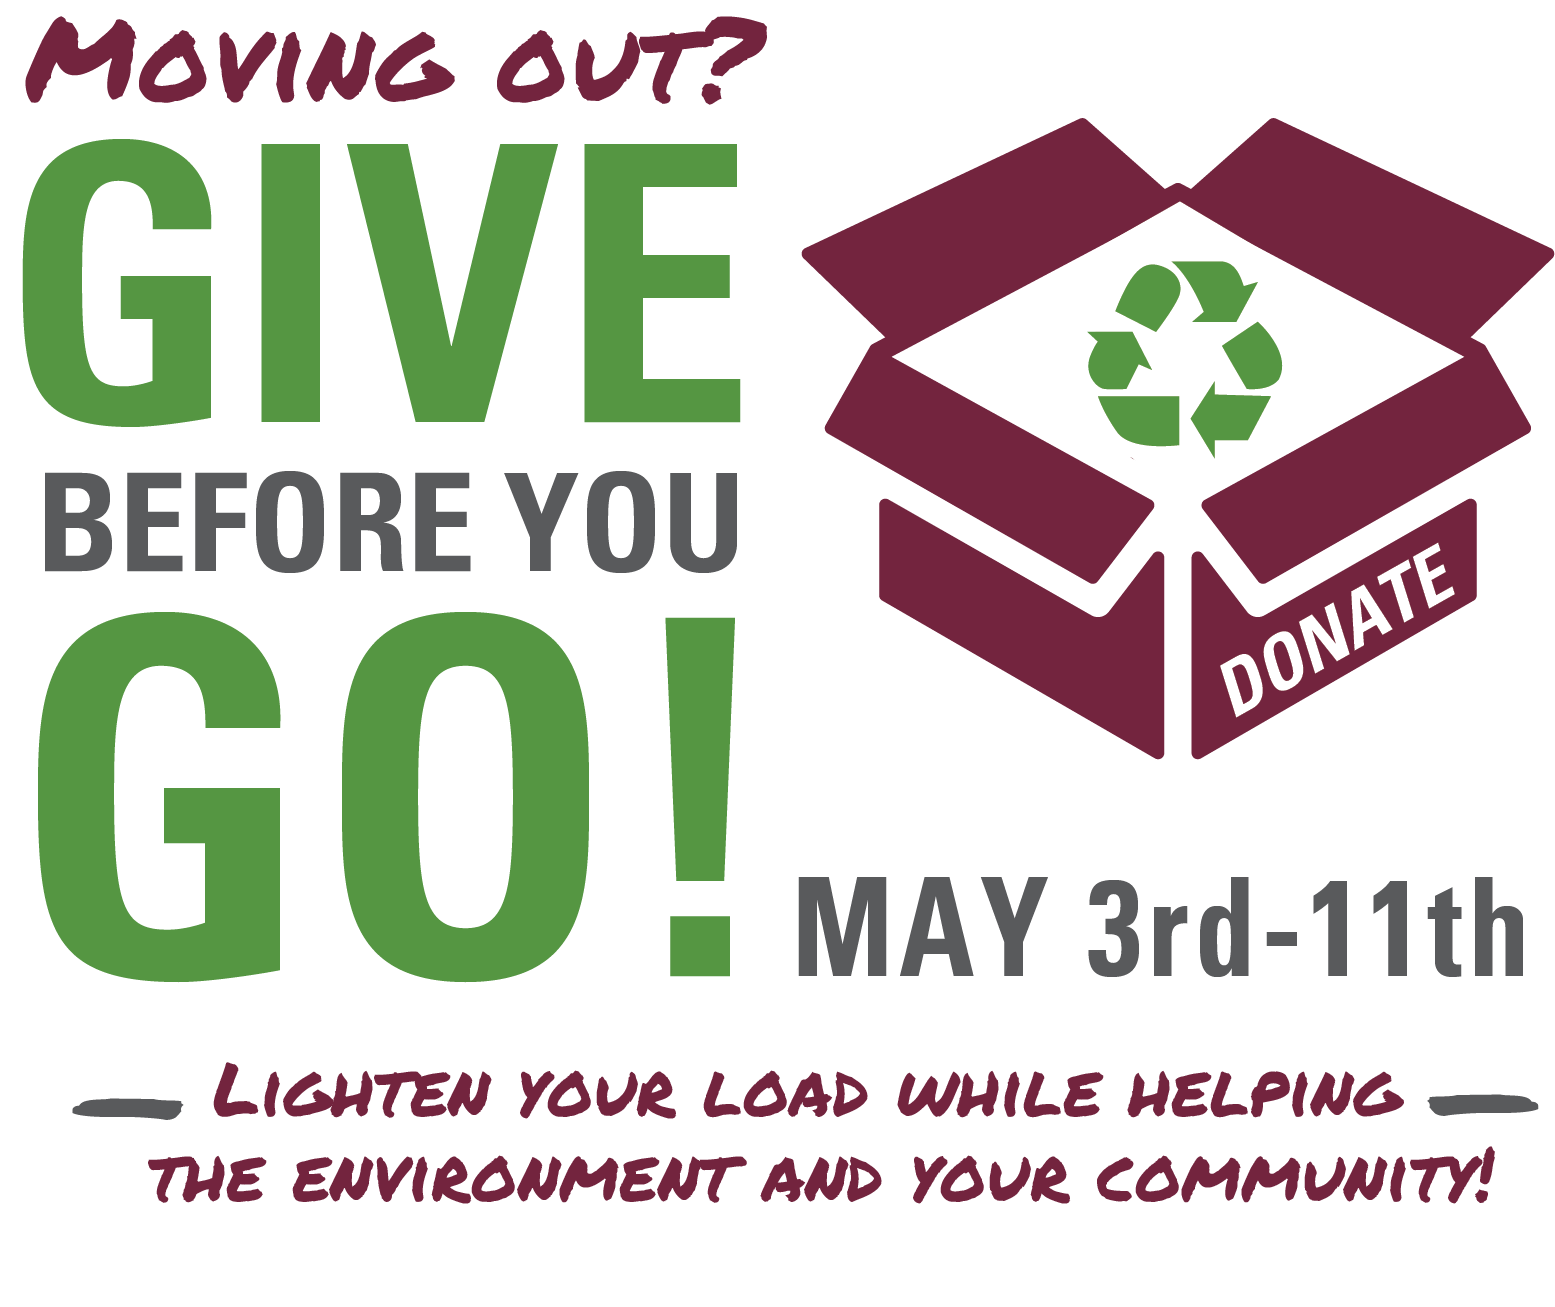 Moving out? Give before you go! Donate May 3rd - 11th. Lighten your load while helping the environment and your community!